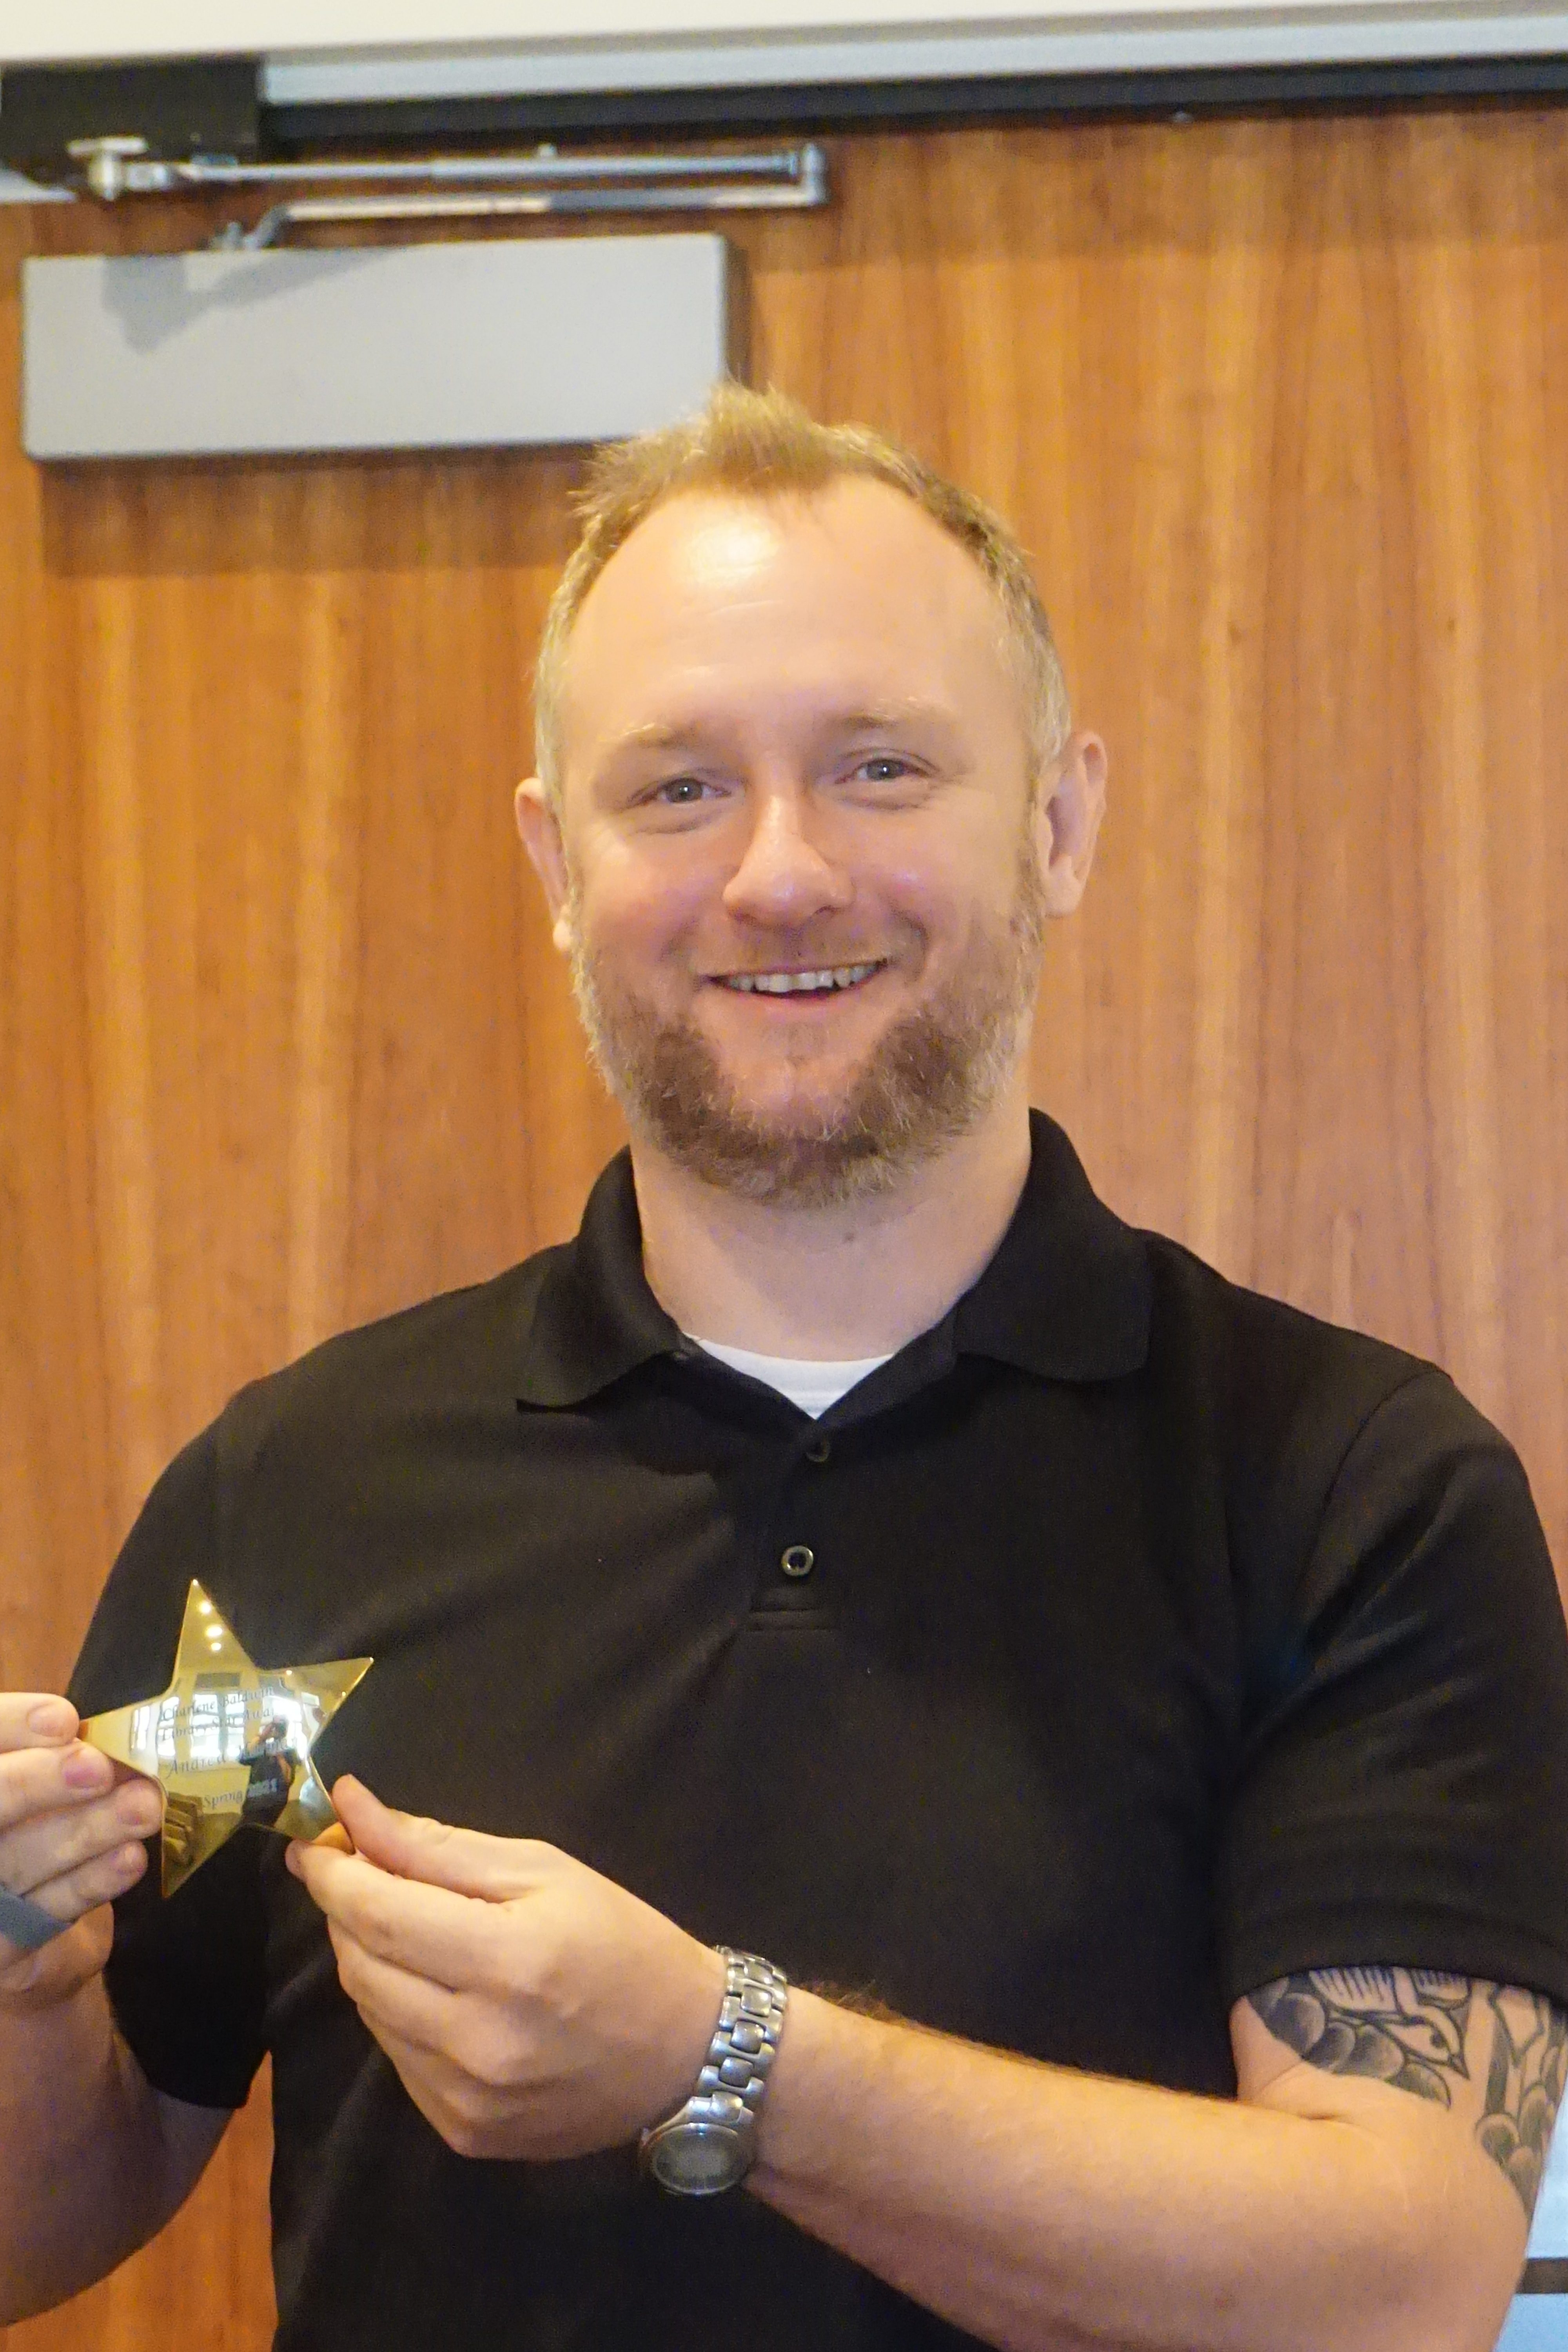 A man smiling for the camera and holding up a small gold star.